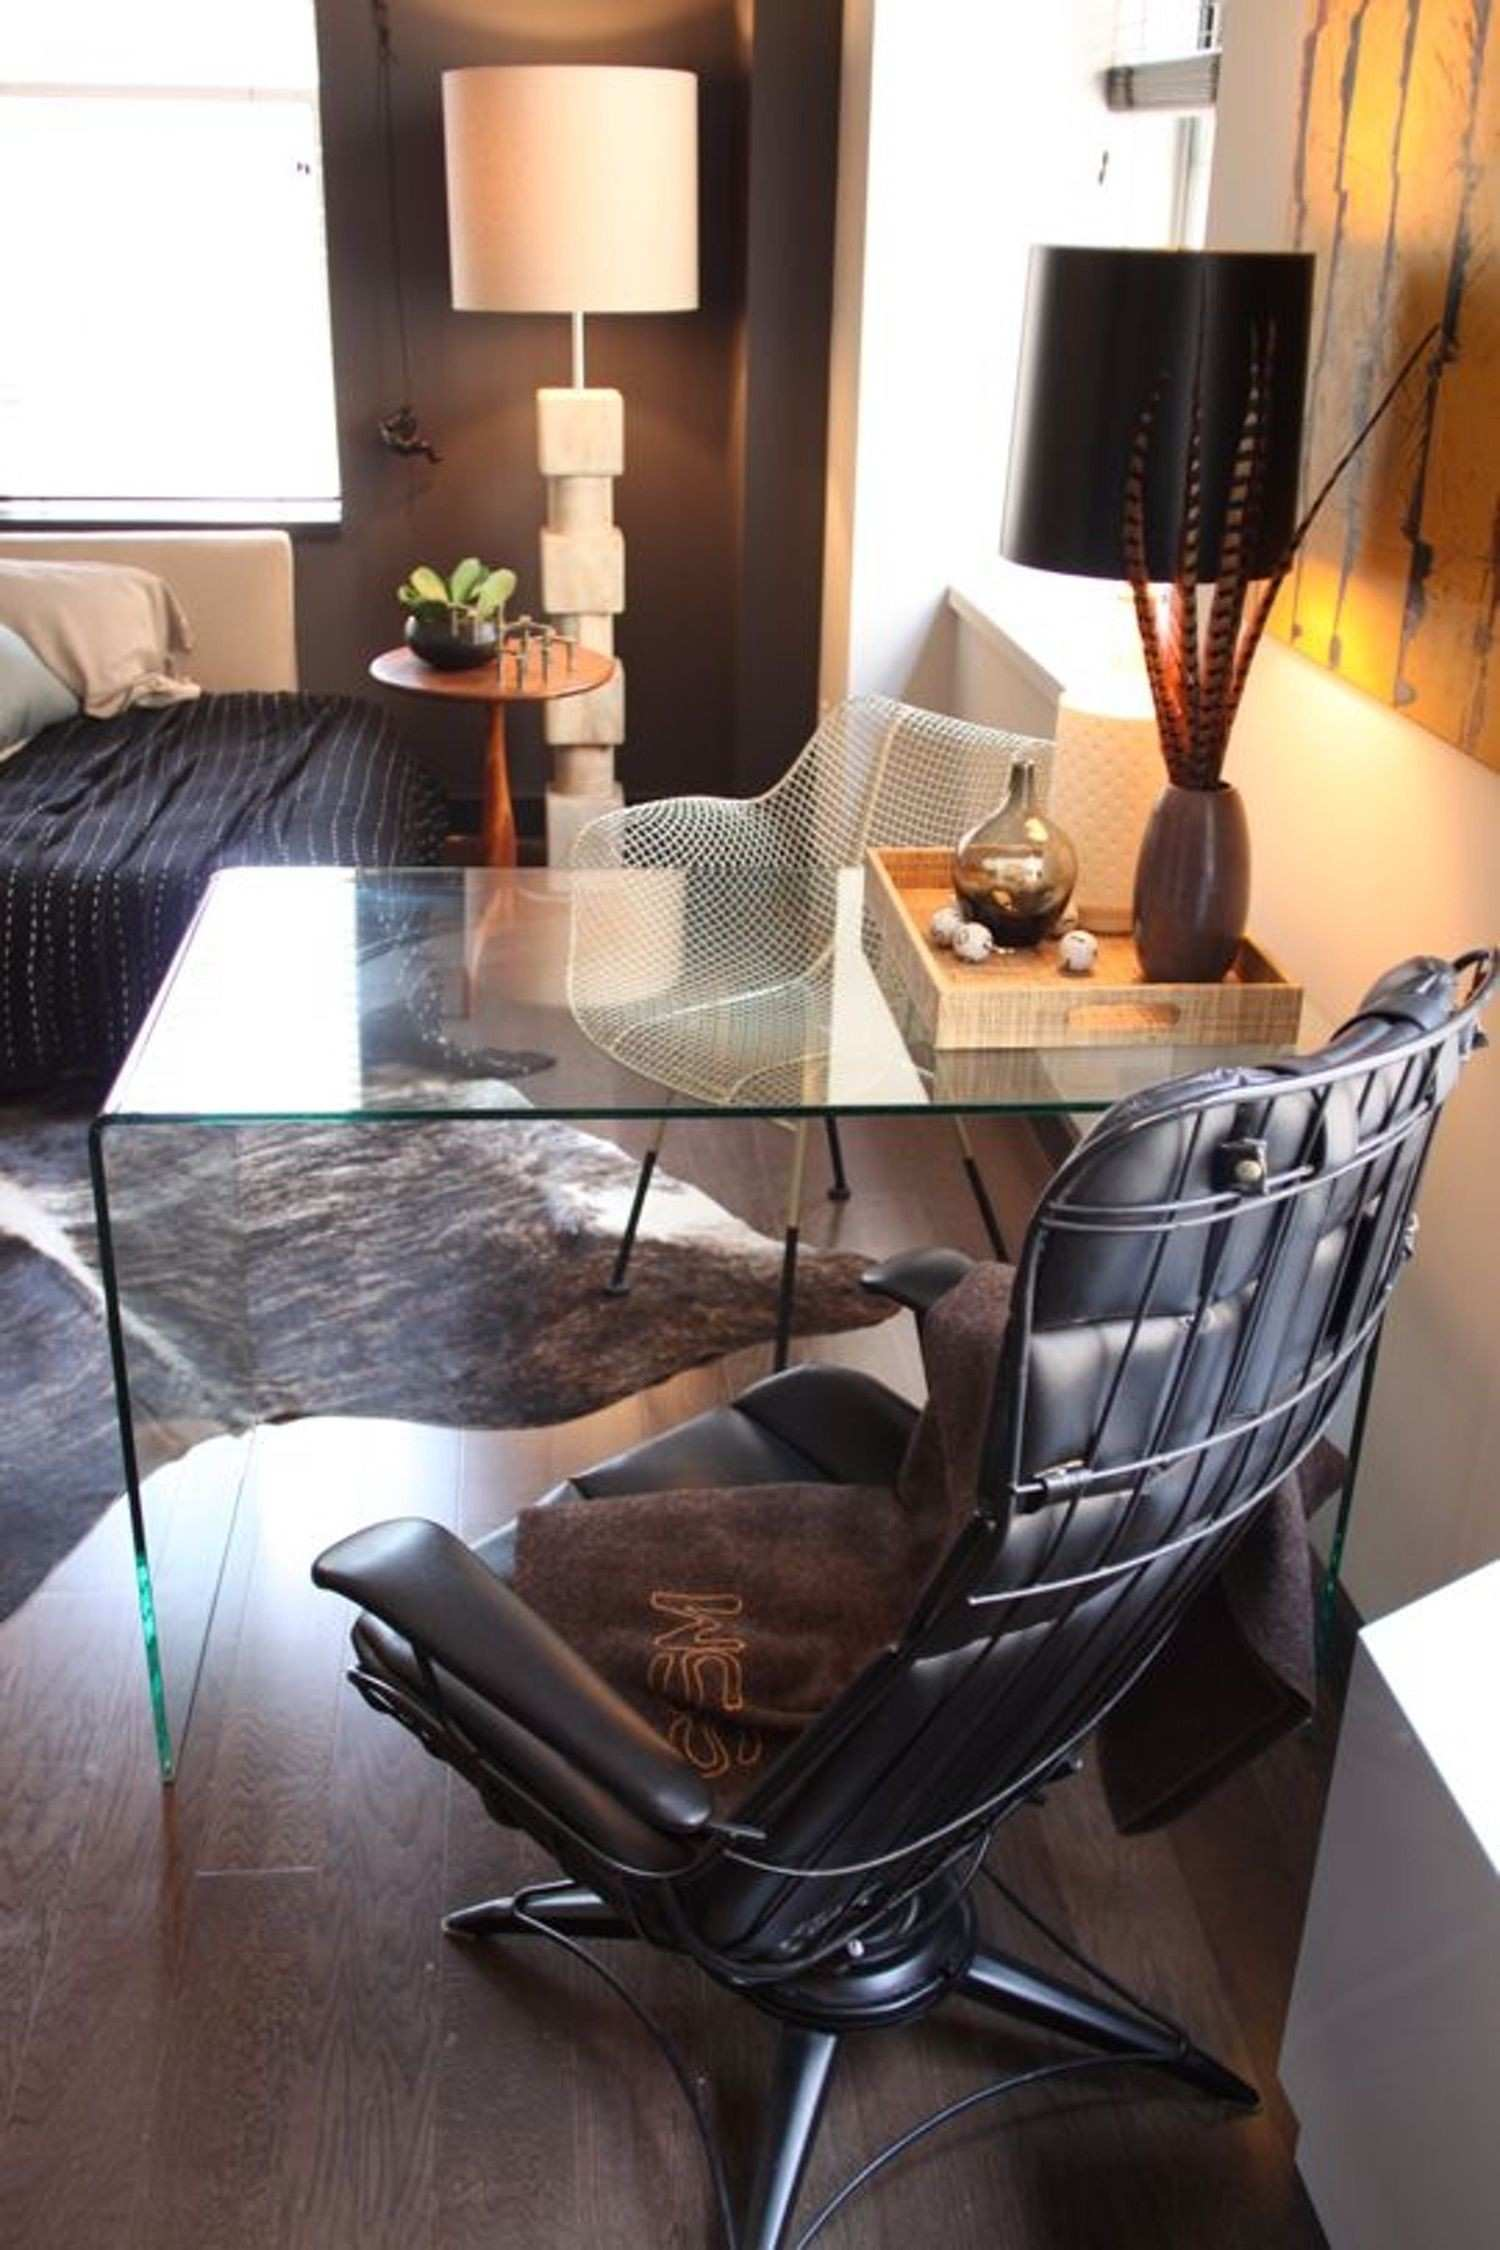 Small Space Solutions Sources for Clear Glass & Acrylic Desks